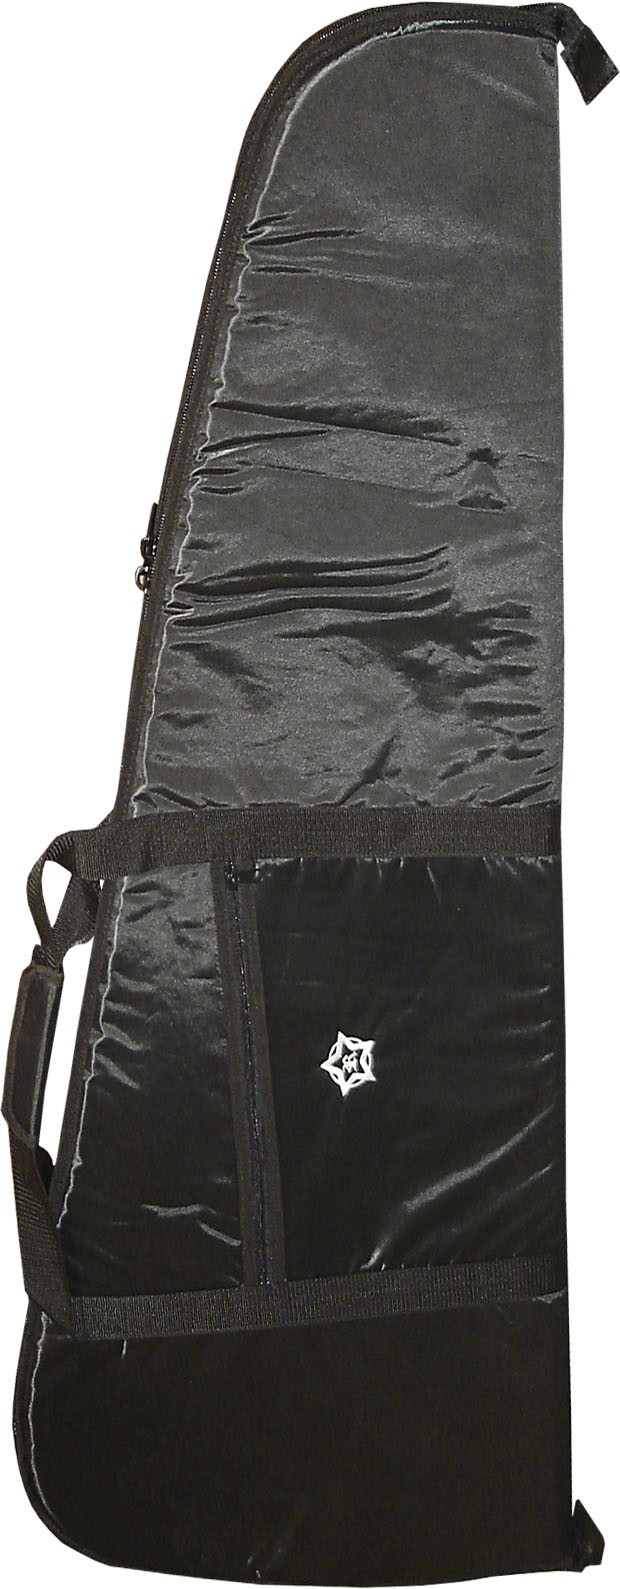 Rosetti Semi Acoustic Guitar Gigbag - Black